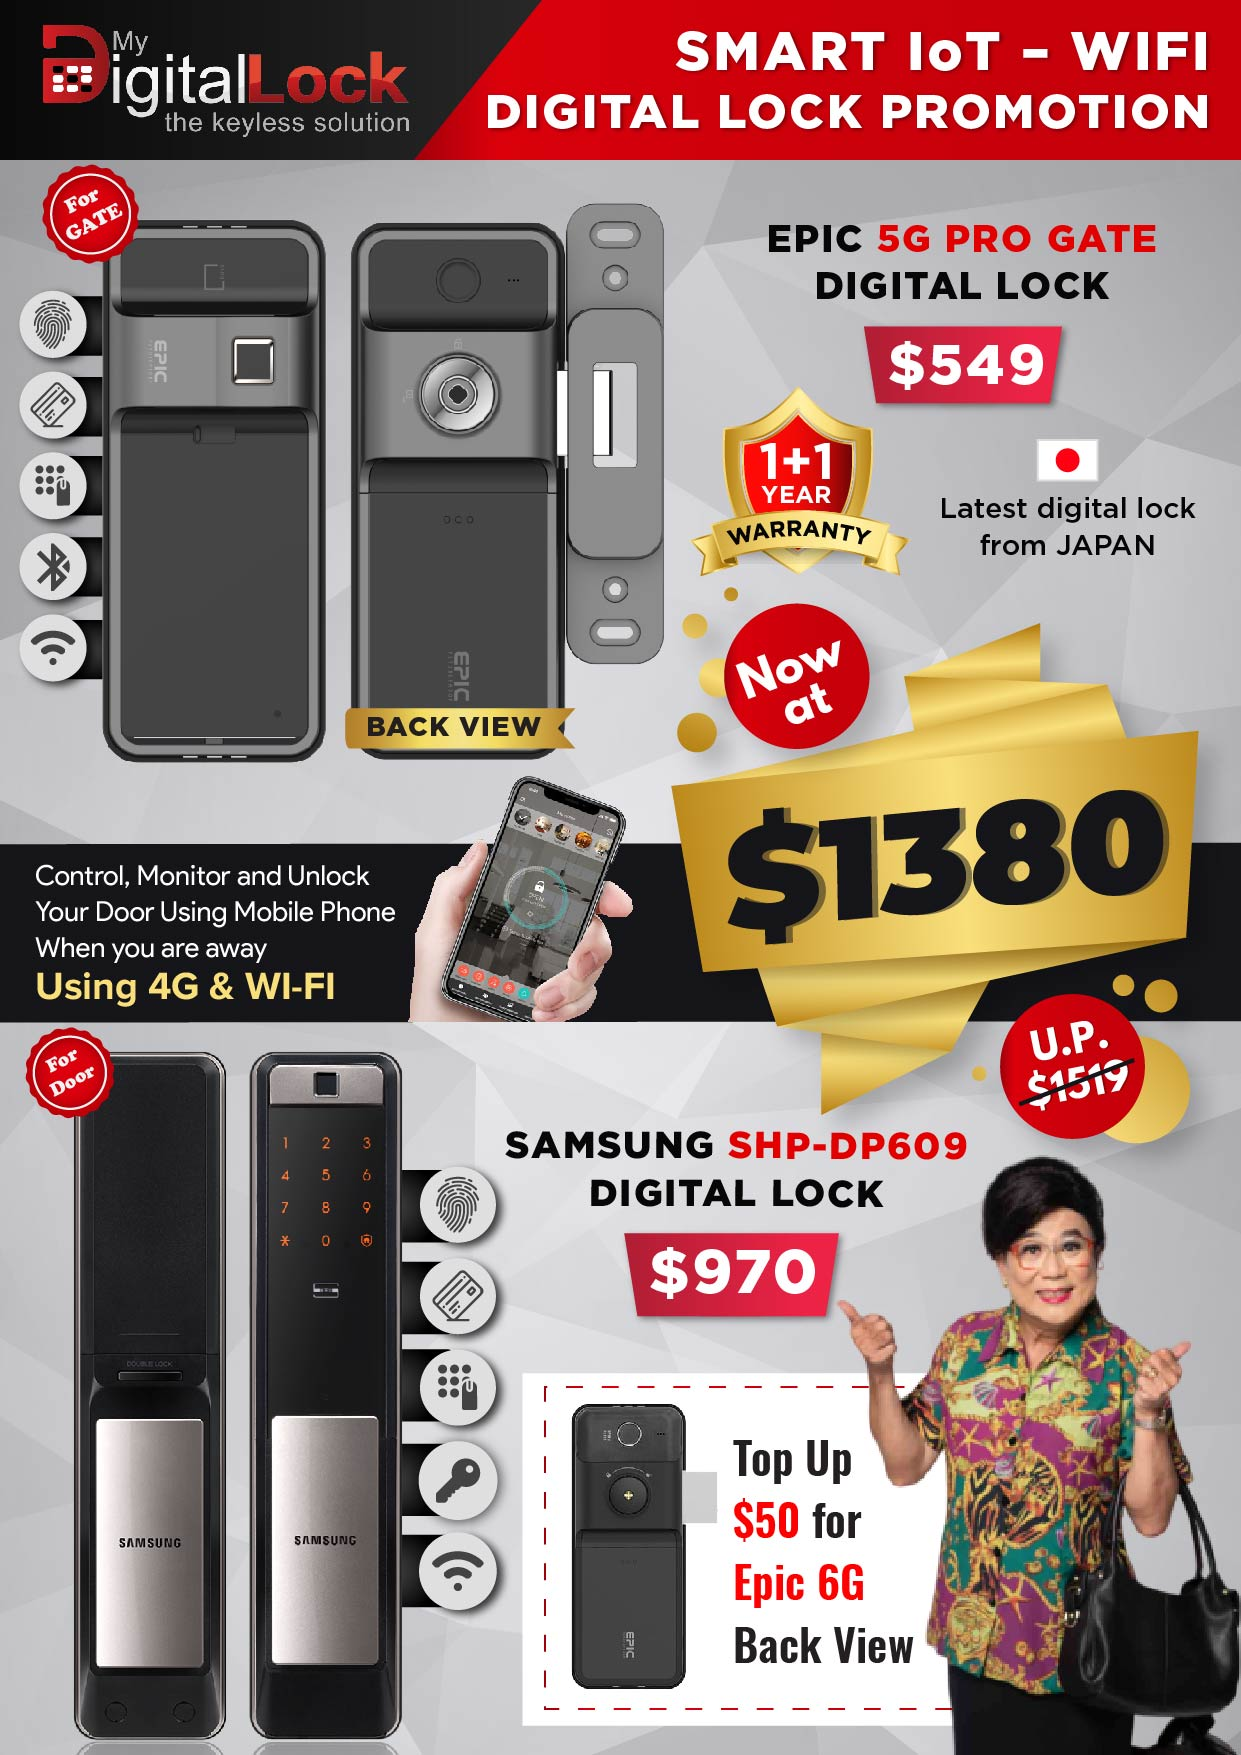 EPIC-5G-PRO-Gate-and-Samsung-SHP-DP609-Door-Digital-Lock-Promotions-14